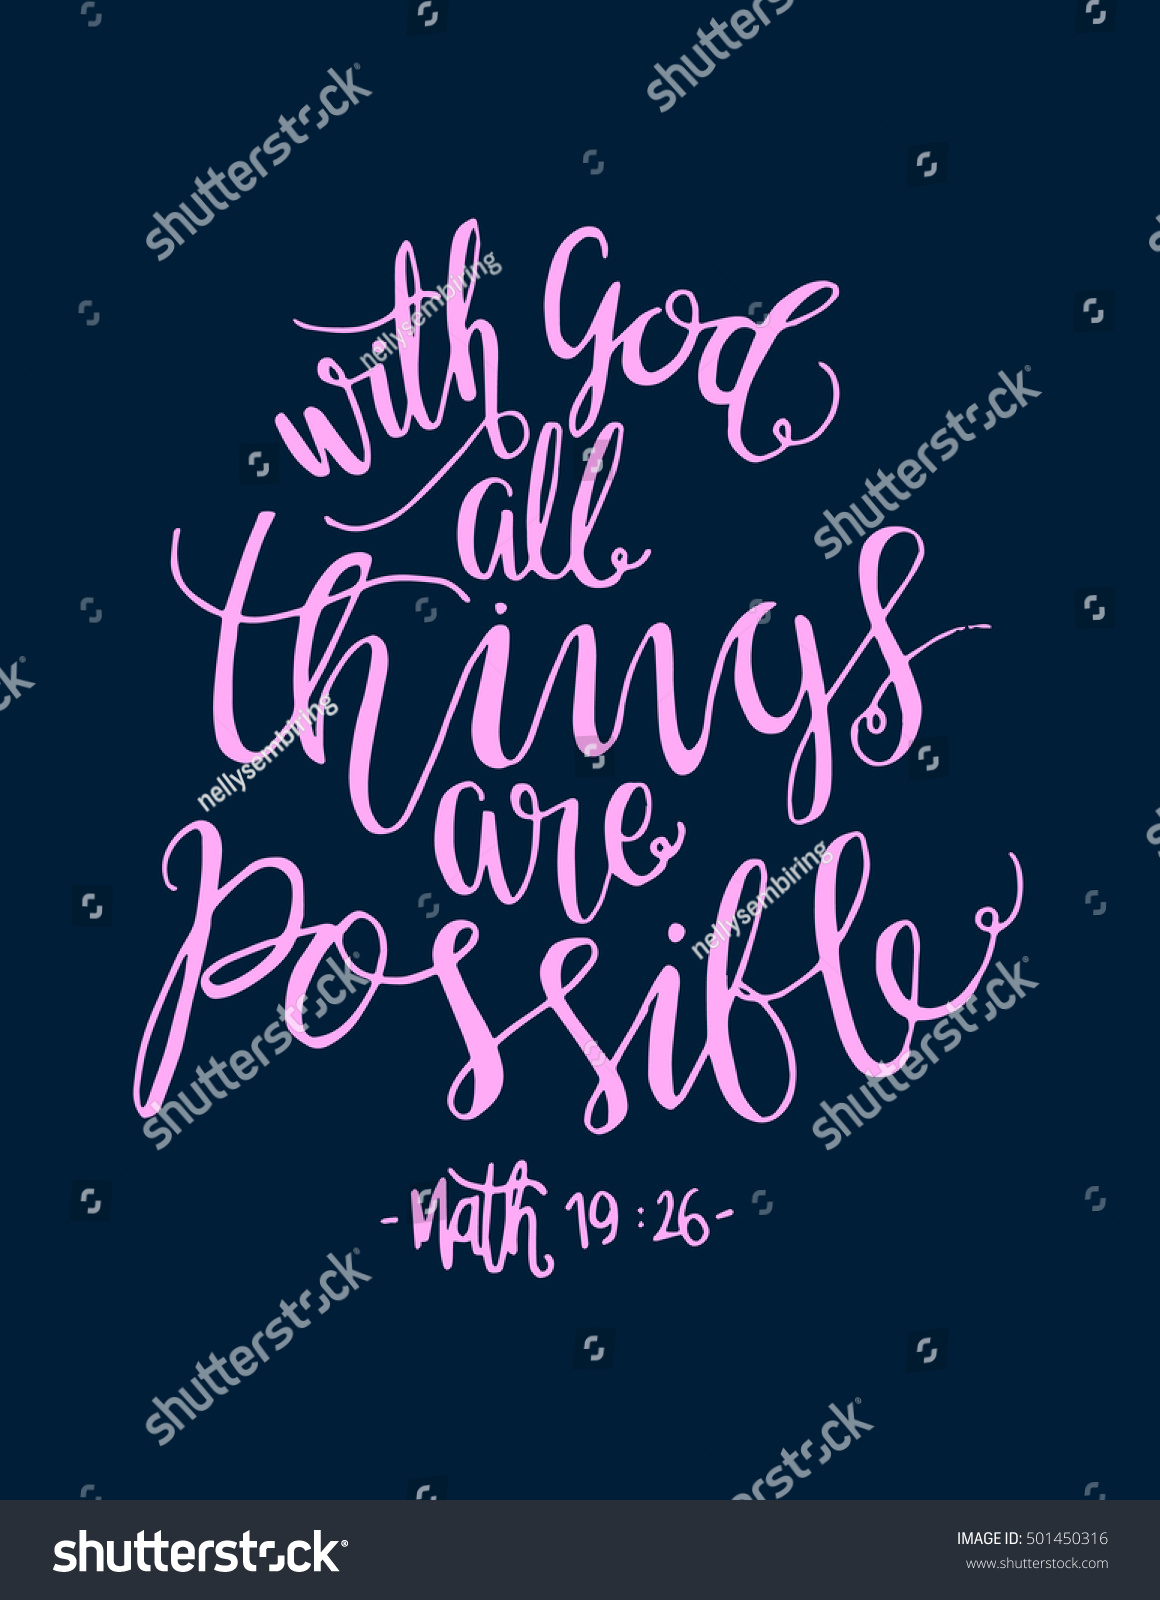 All things are possible quote modern calligraphy bible